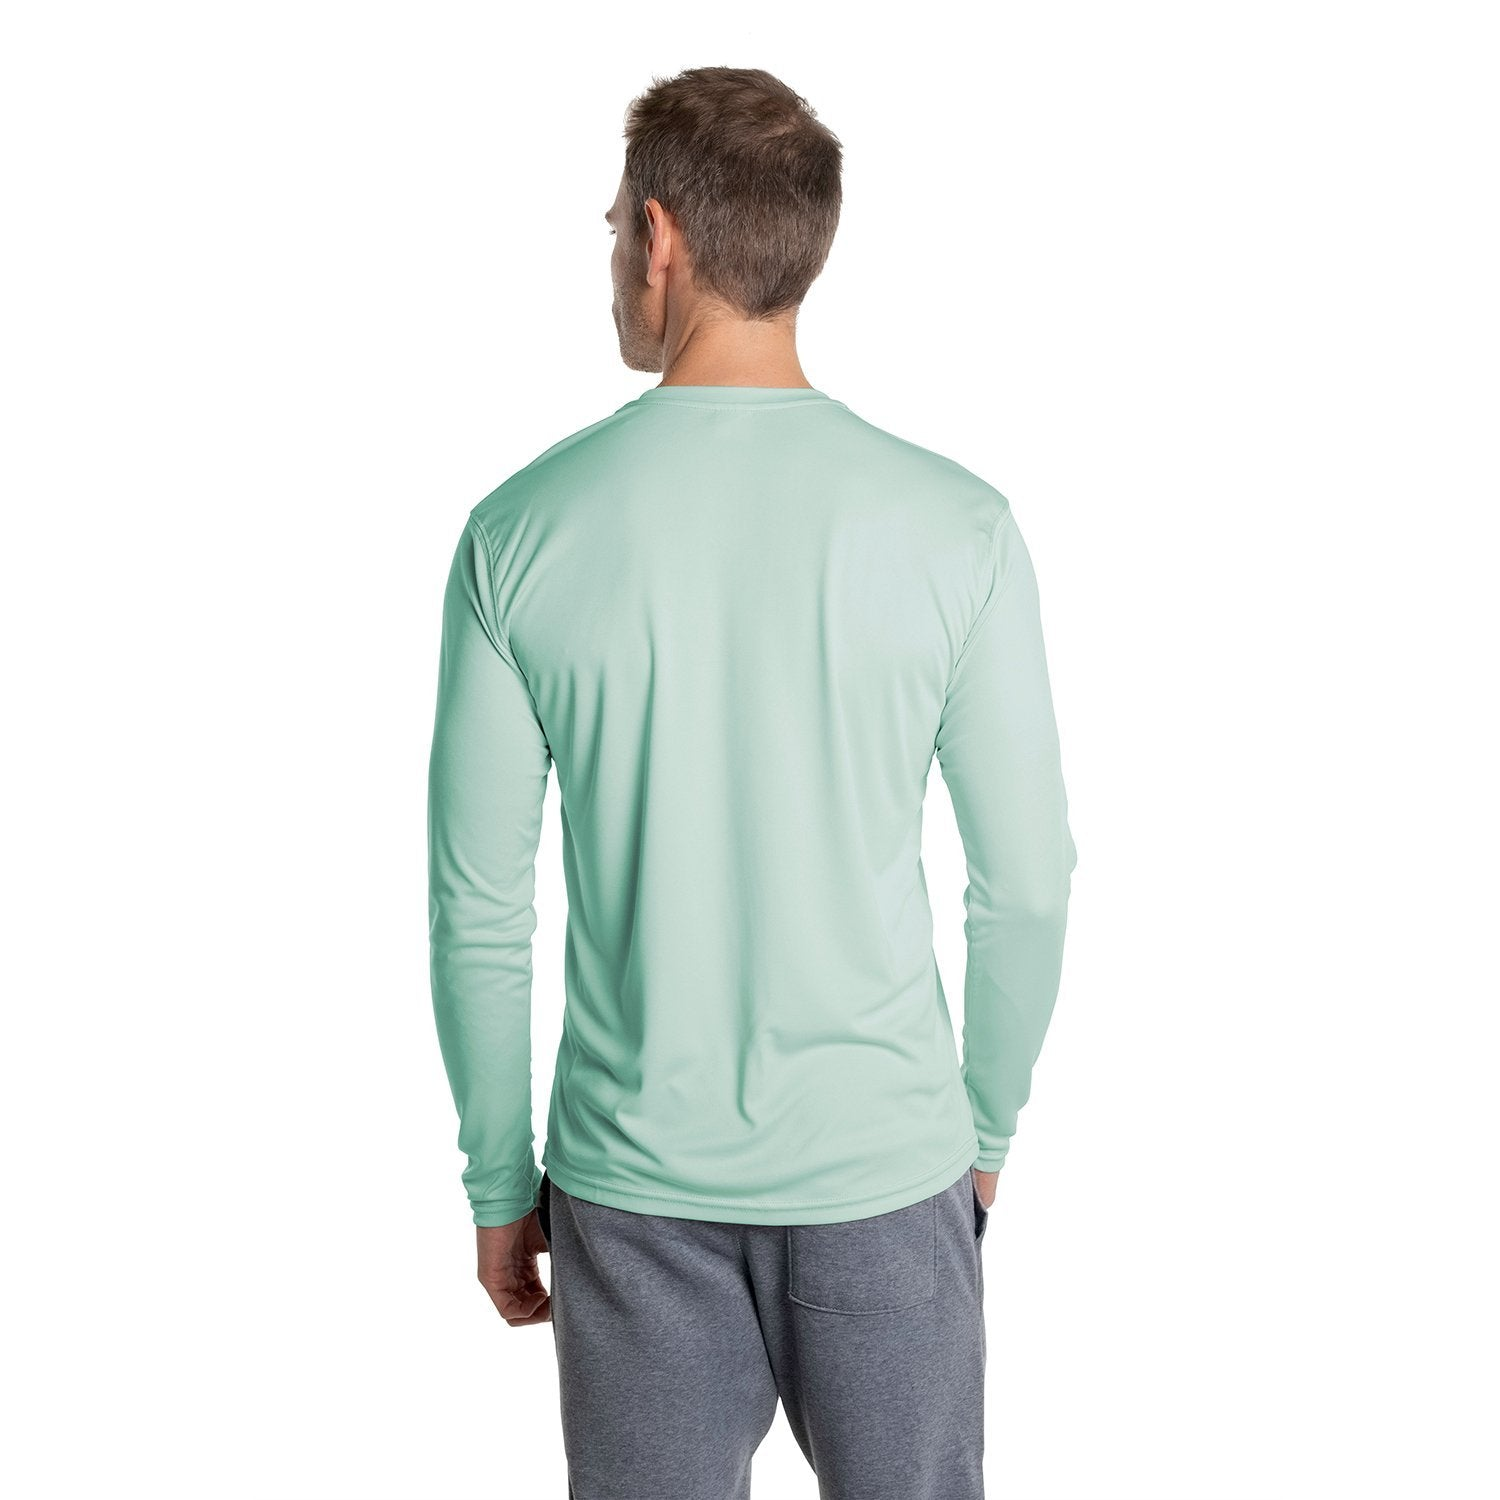 M700SG Solar Long Sleeve - Seagrass